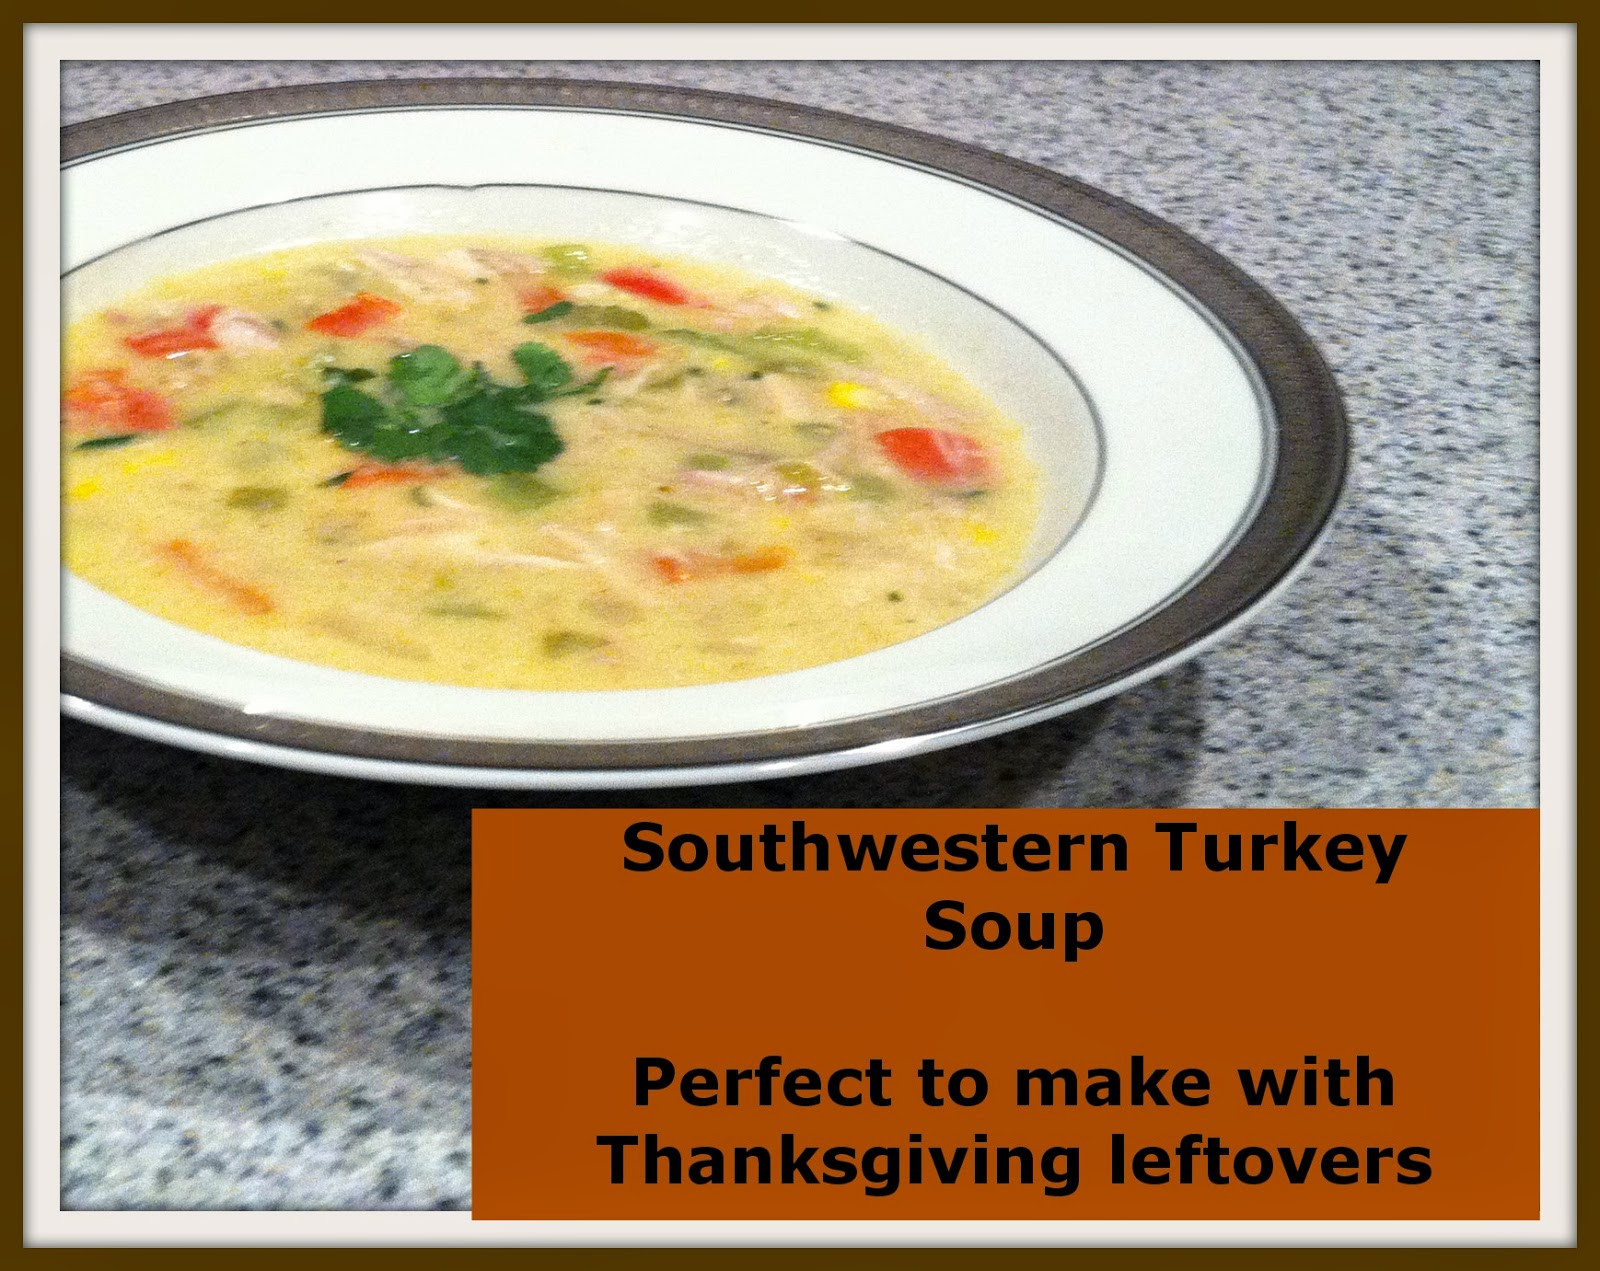 Turkey Soup From Thanksgiving Leftovers  twingle mommmy Southwestern Turkey Soup Recipe Perfect